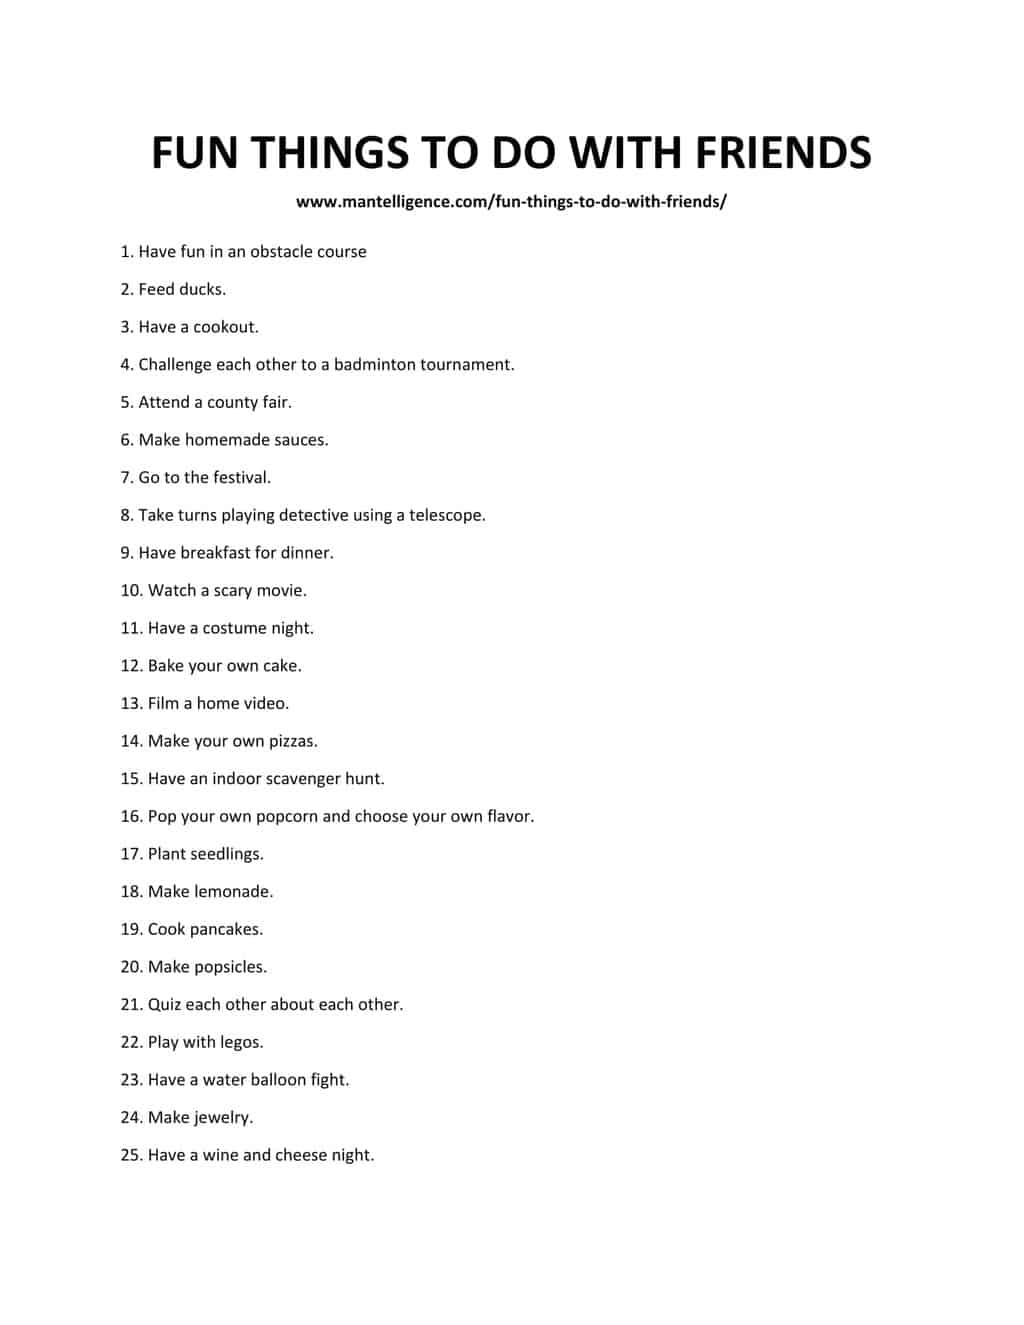 FUN_THINGS_TO_DO_WITH_FRIENDS-1[1]